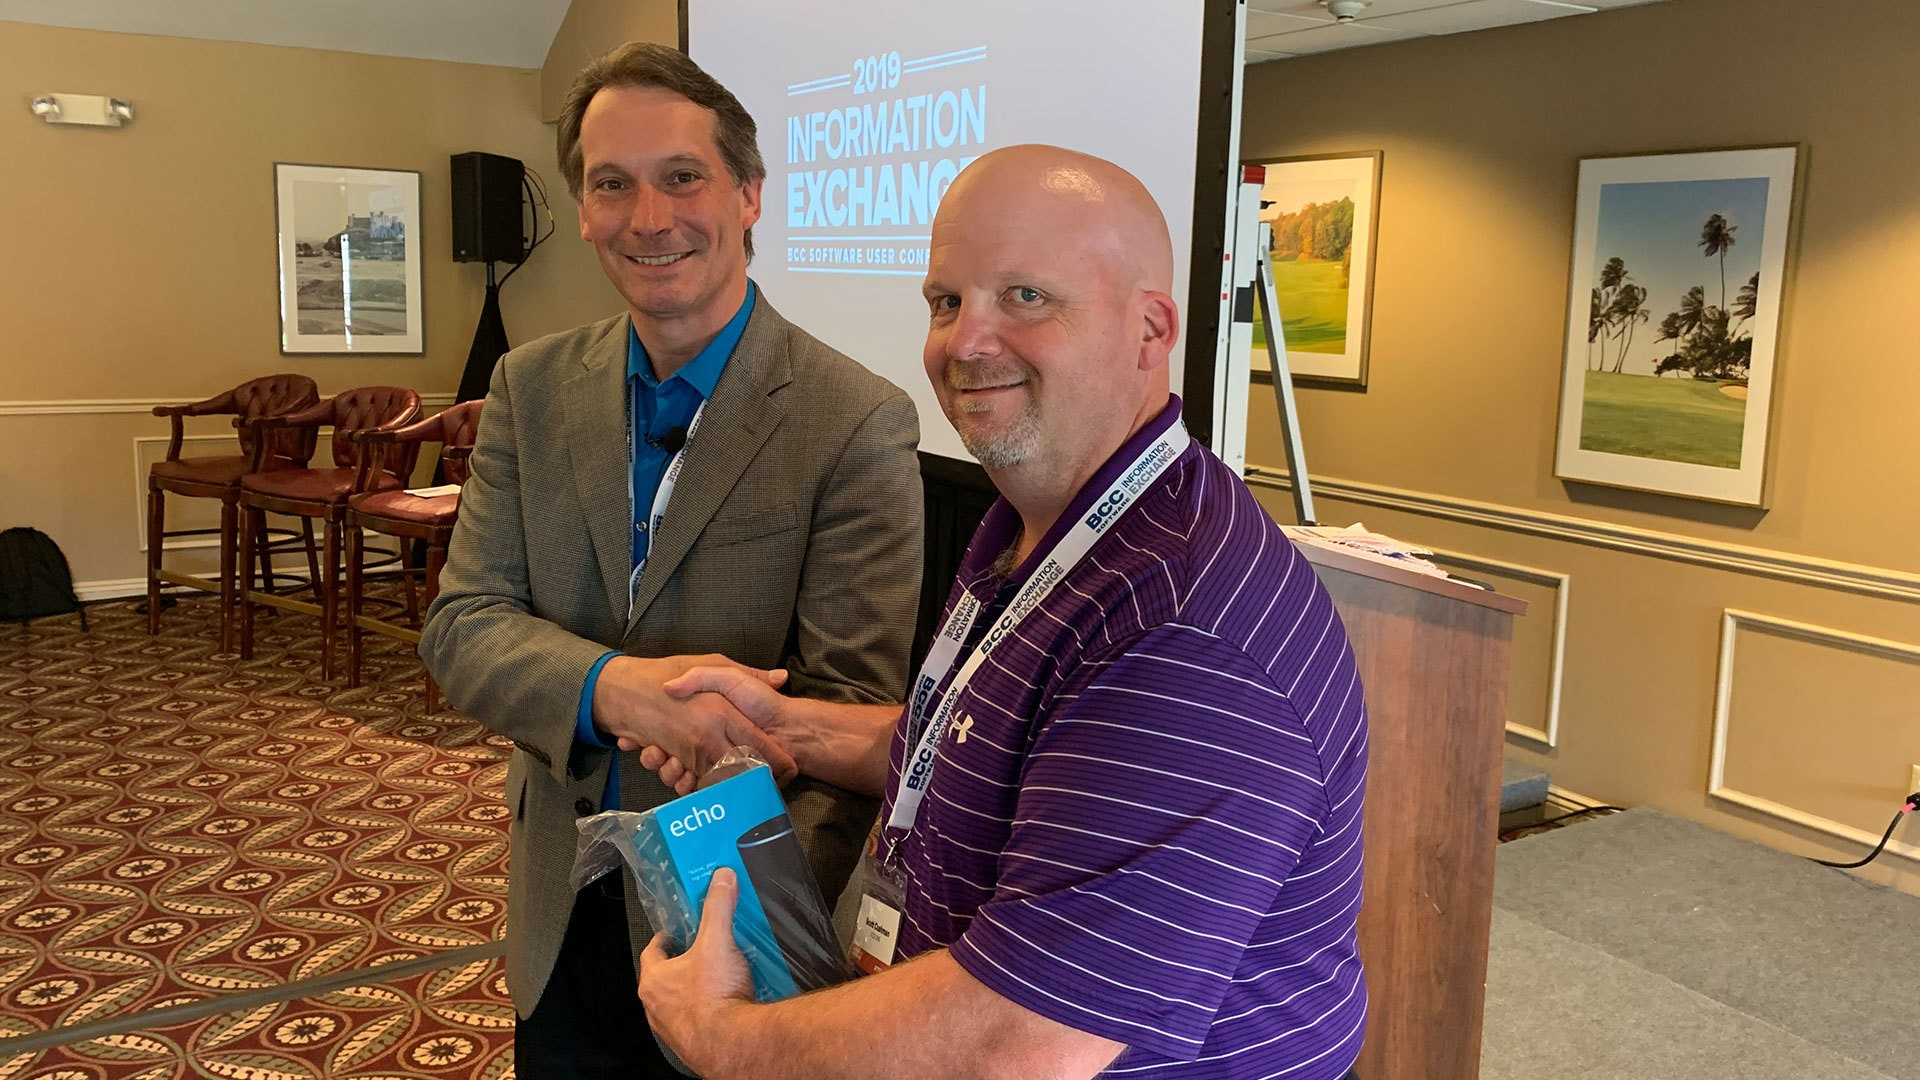 WINNER! Scott Cushman from DCG ONE won an Amazon Echo from BCC Software.